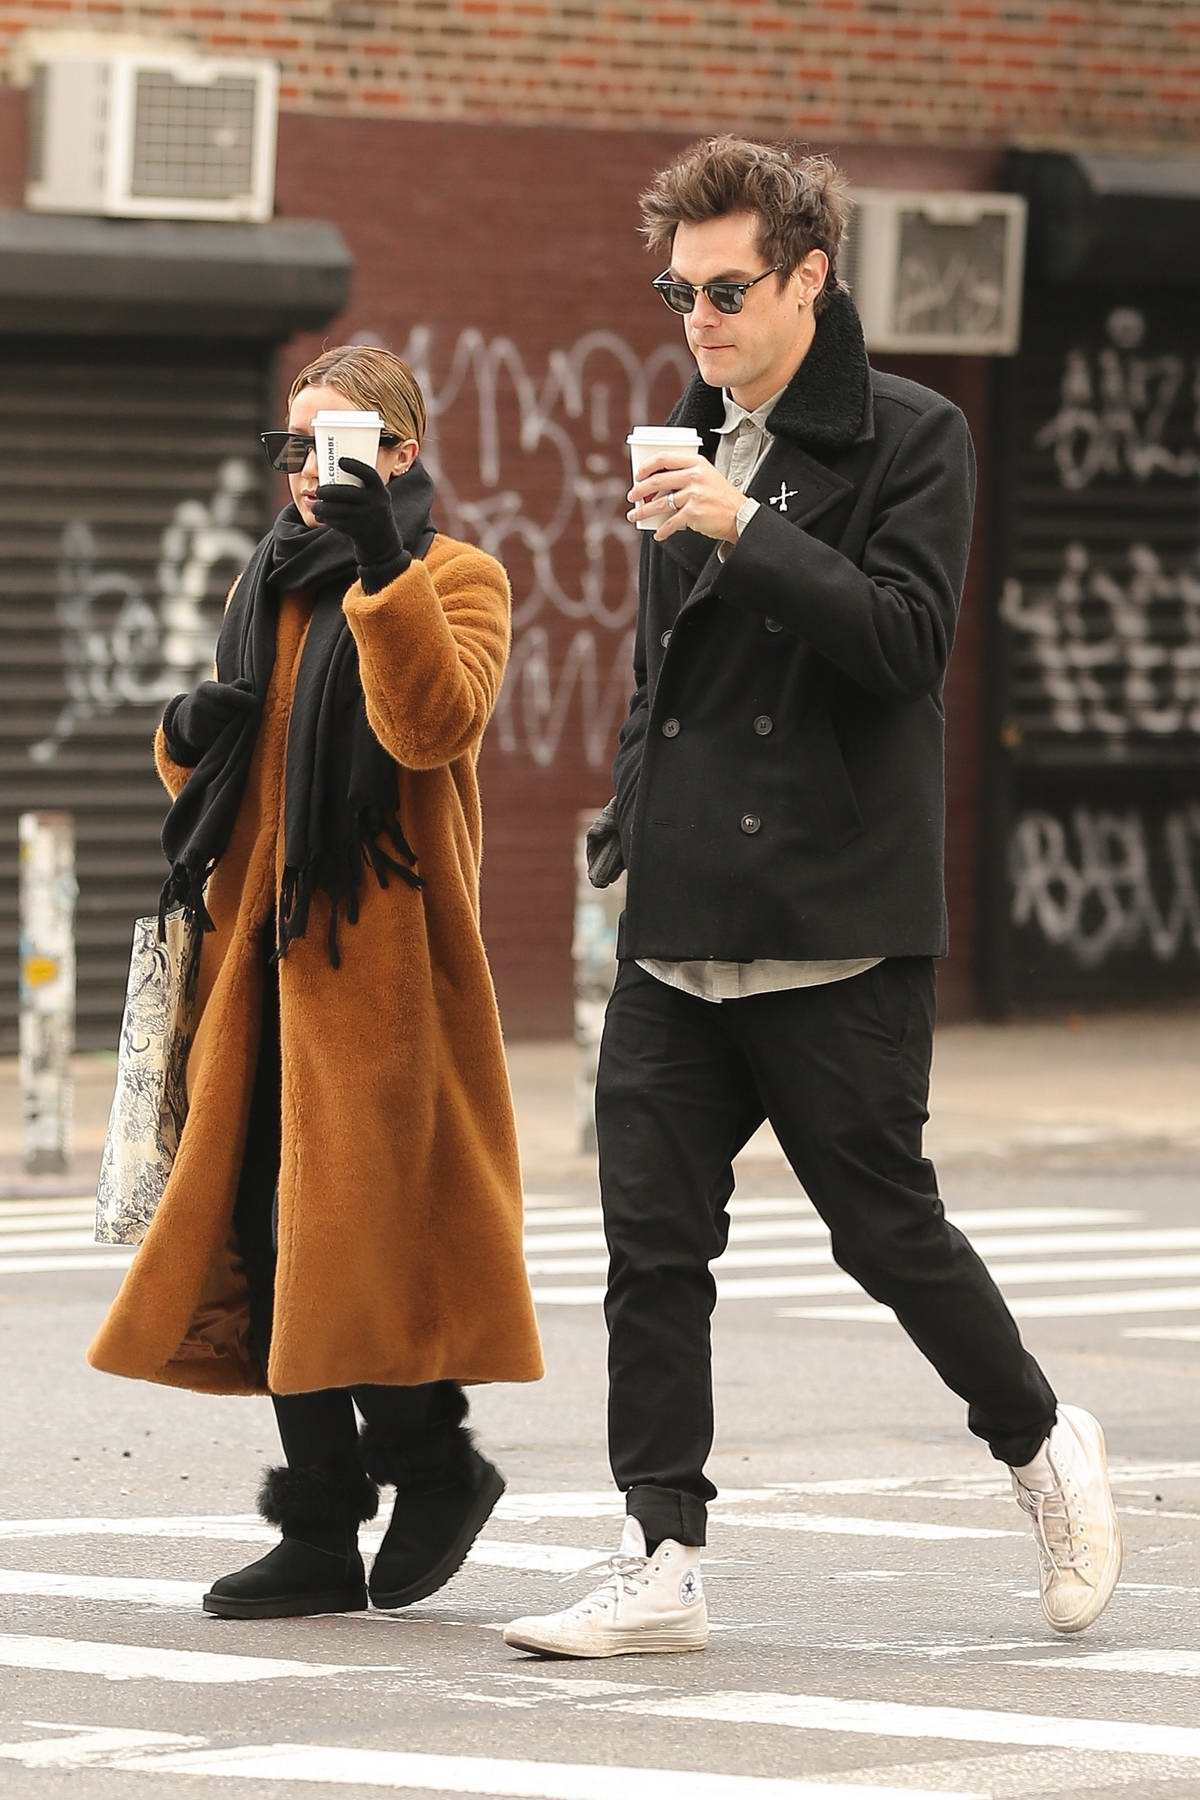 Ashley Tisdale Bundles Up In Long Coat And Ugg Boots As She And Christopher French Steps Out For Warm Coffee On A Chilly Day In Tribeca New York City 211118 4